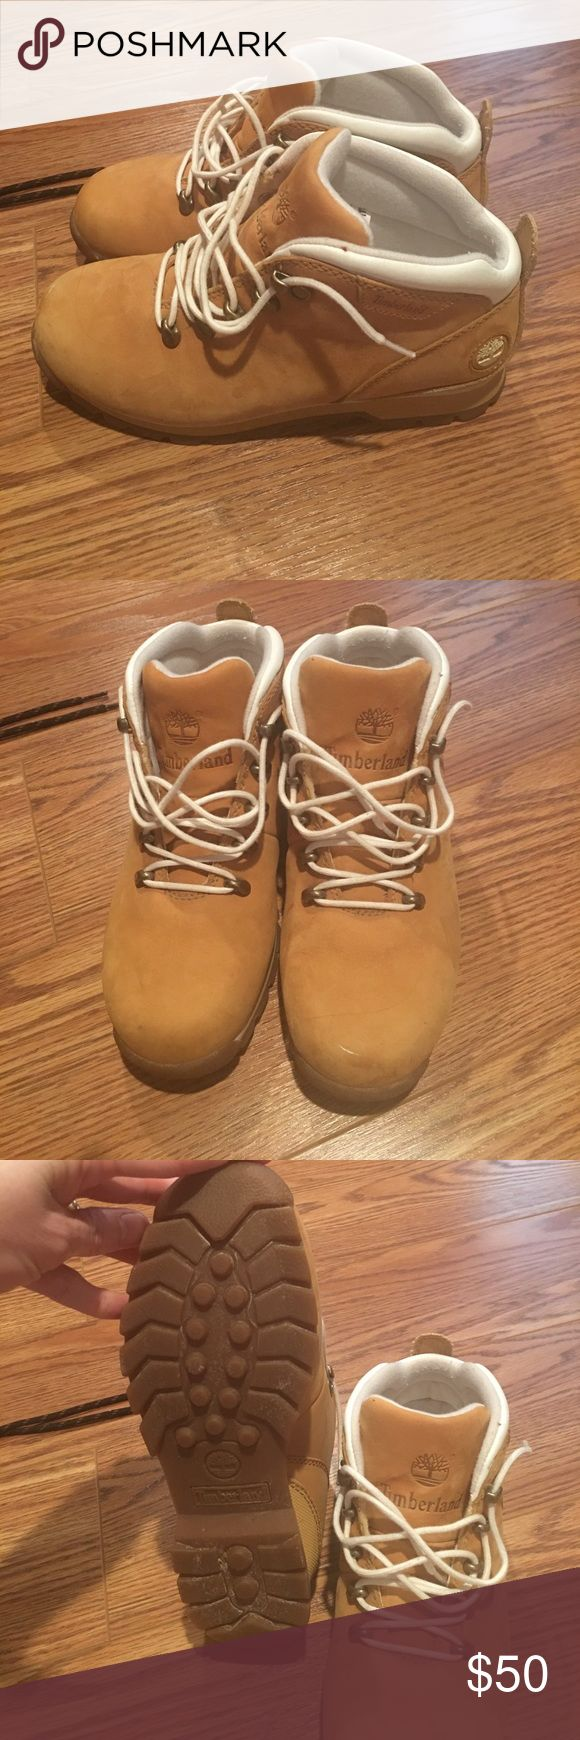 Ladies Timberland boots Tan suede material with white trim. Size 7 women's. Like new Timberland Shoes Lace Up Boots